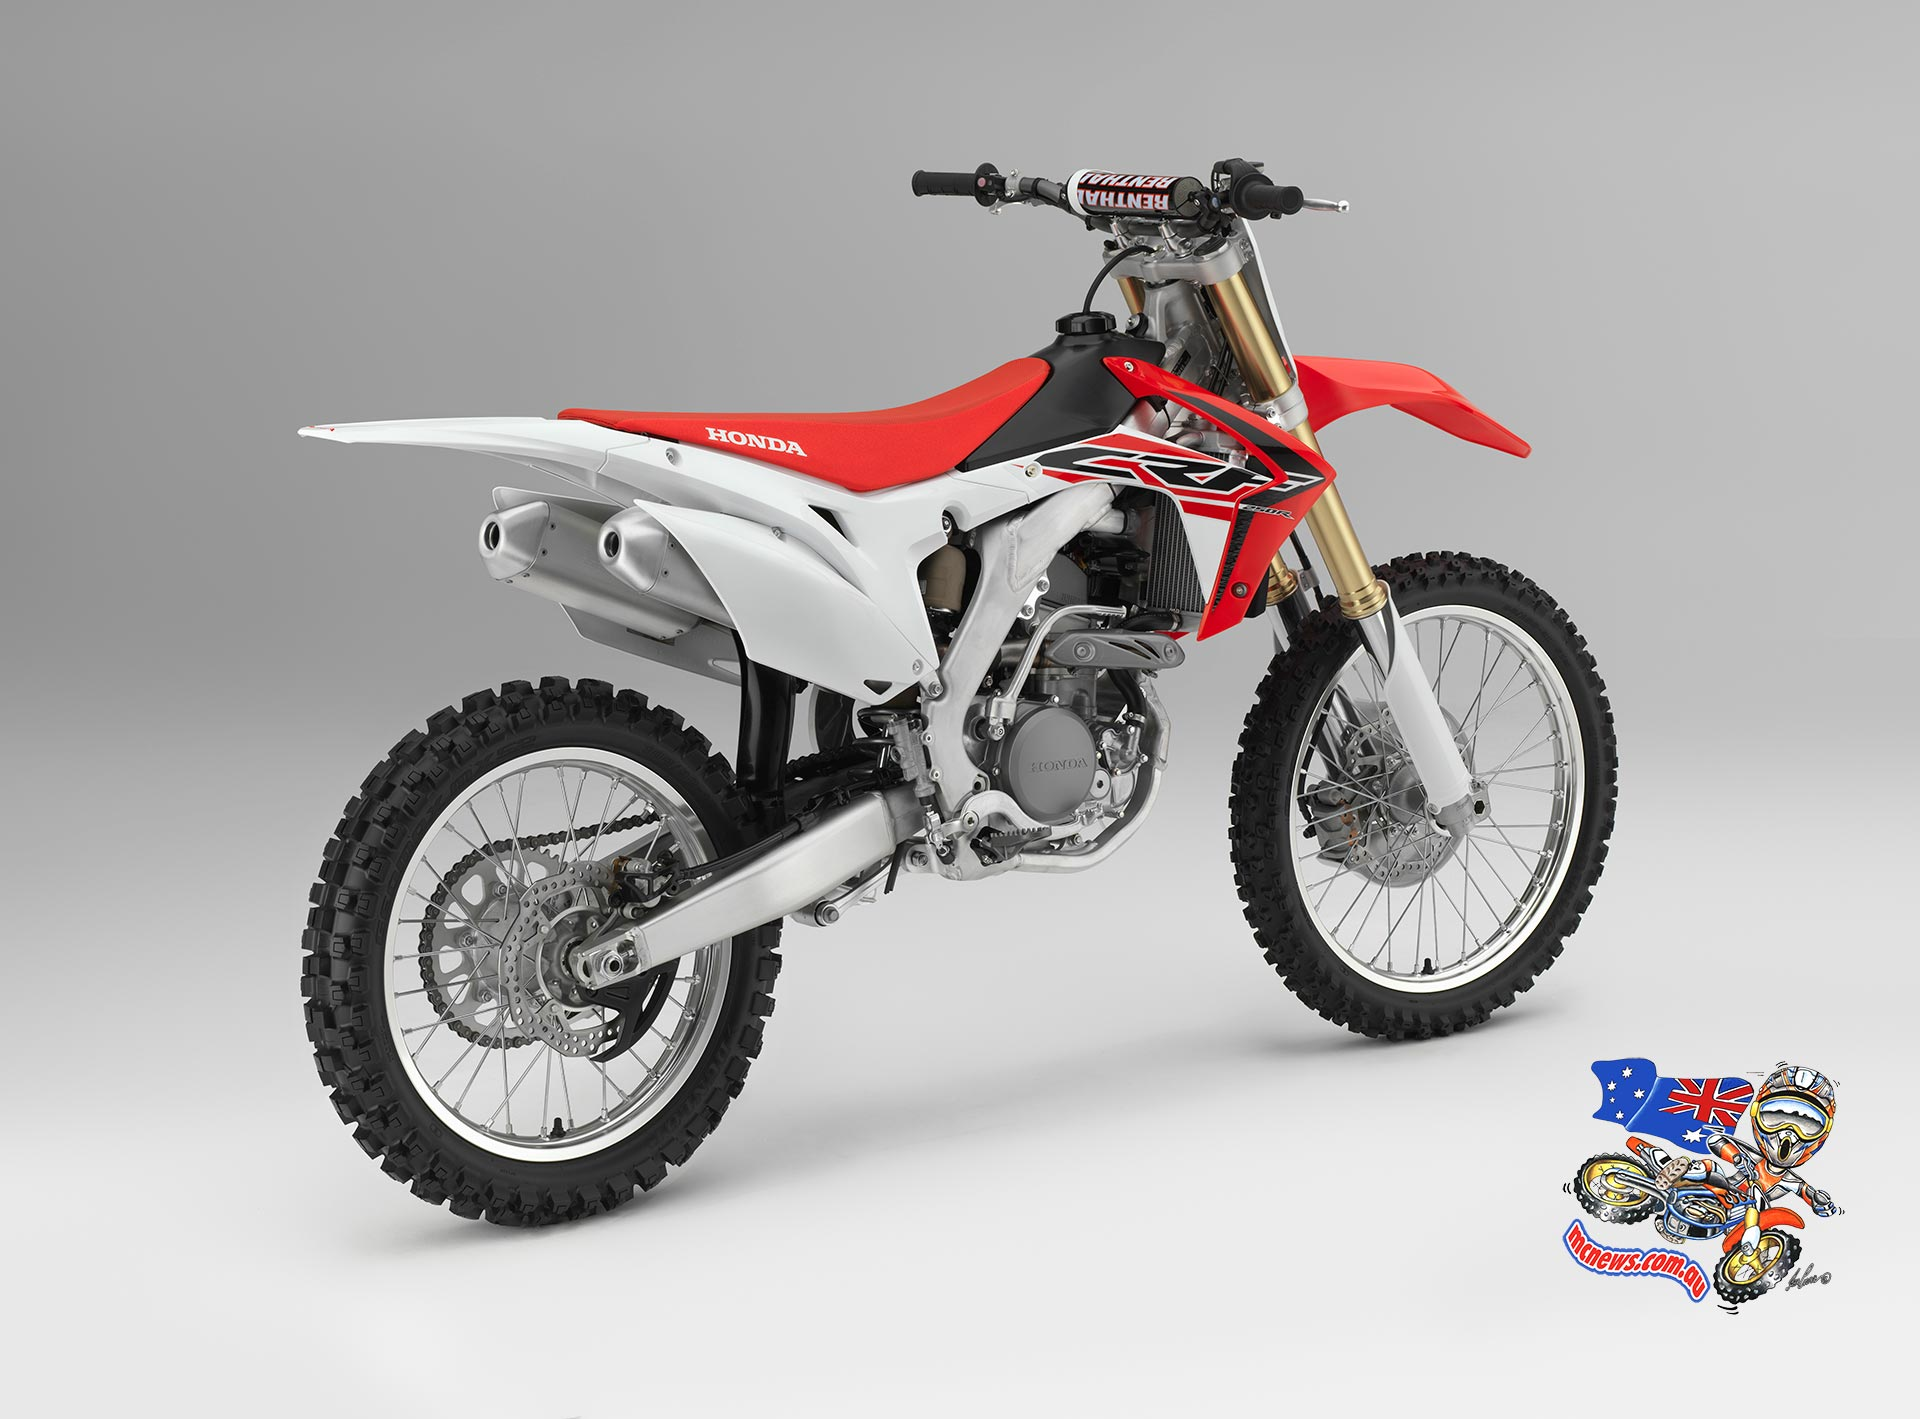 2015 Honda CRF250R - There are no changes to the CRF250R's sixth generation aluminium-twin beam frame, originally revealed on the 2013 CRF450R.